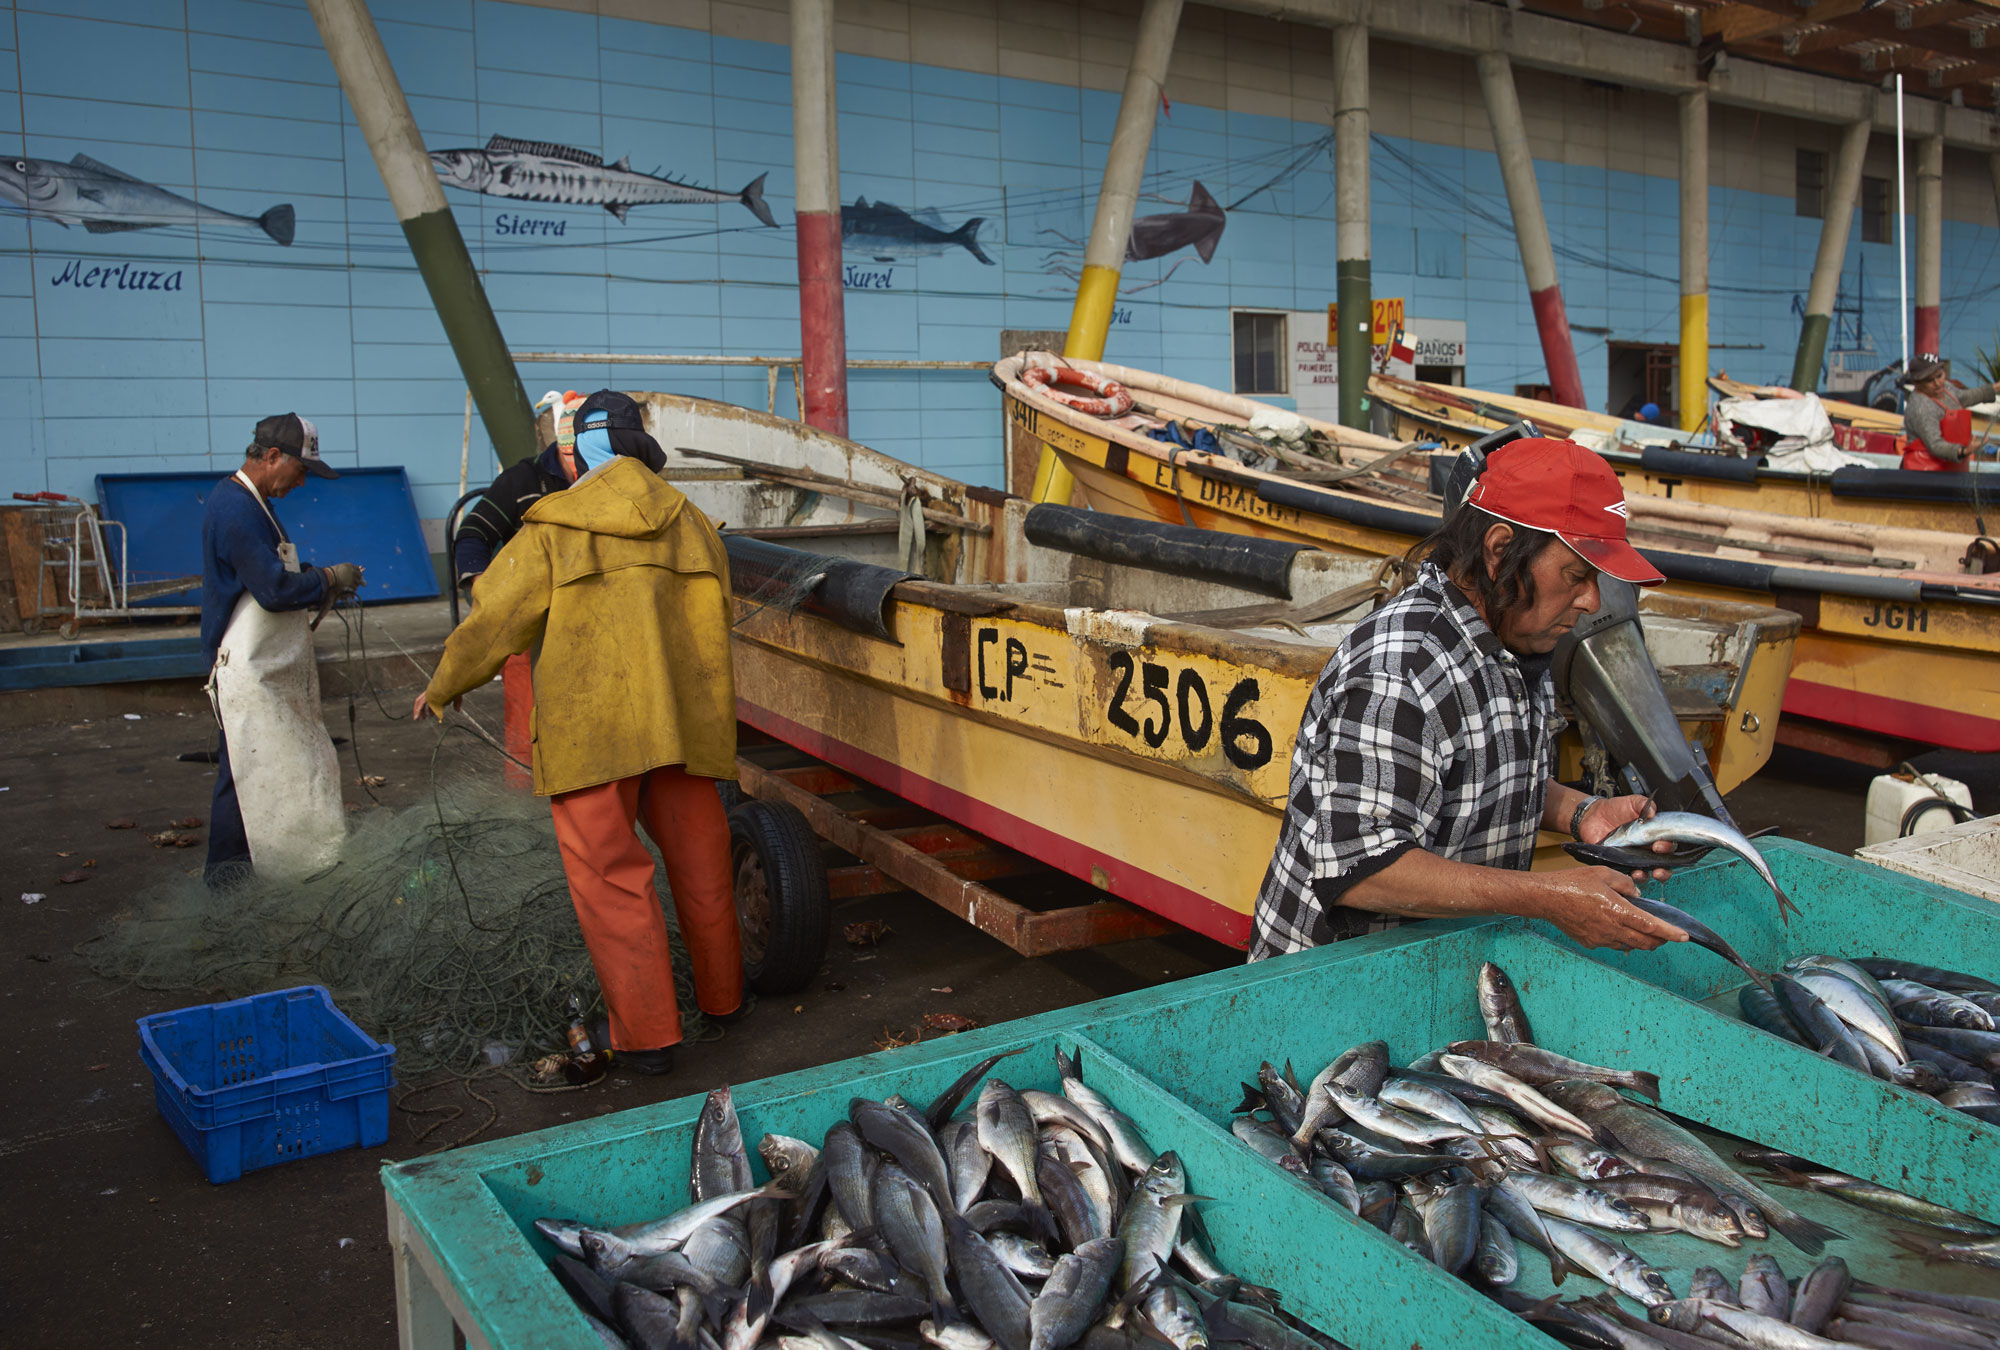 Fishermen in Chile on the docks